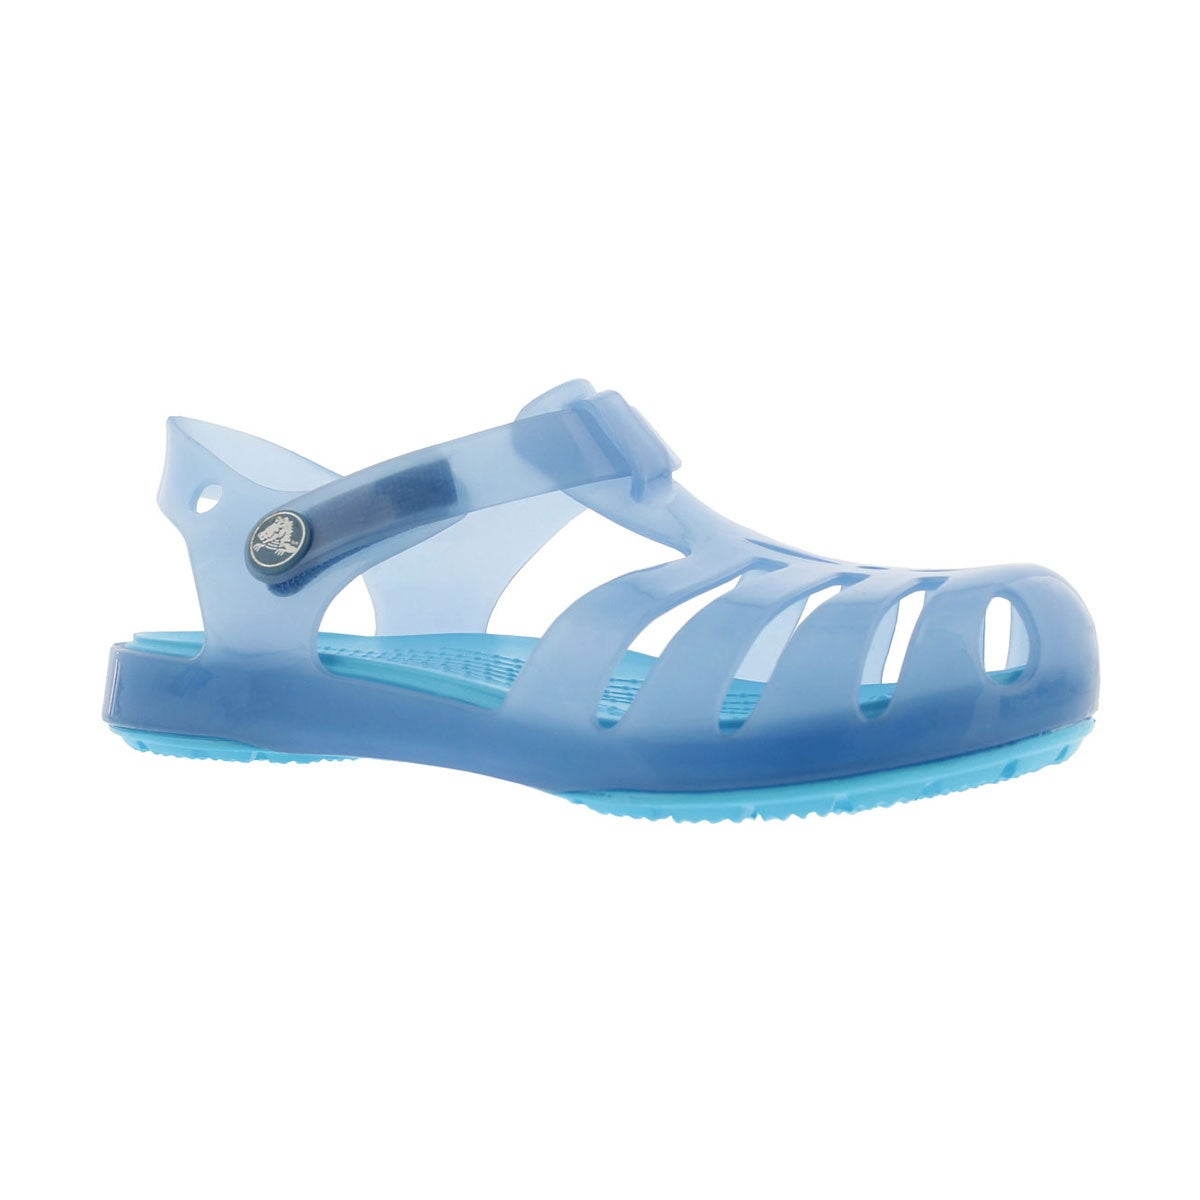 Girls' ISABELLA dusty blue casual sandals